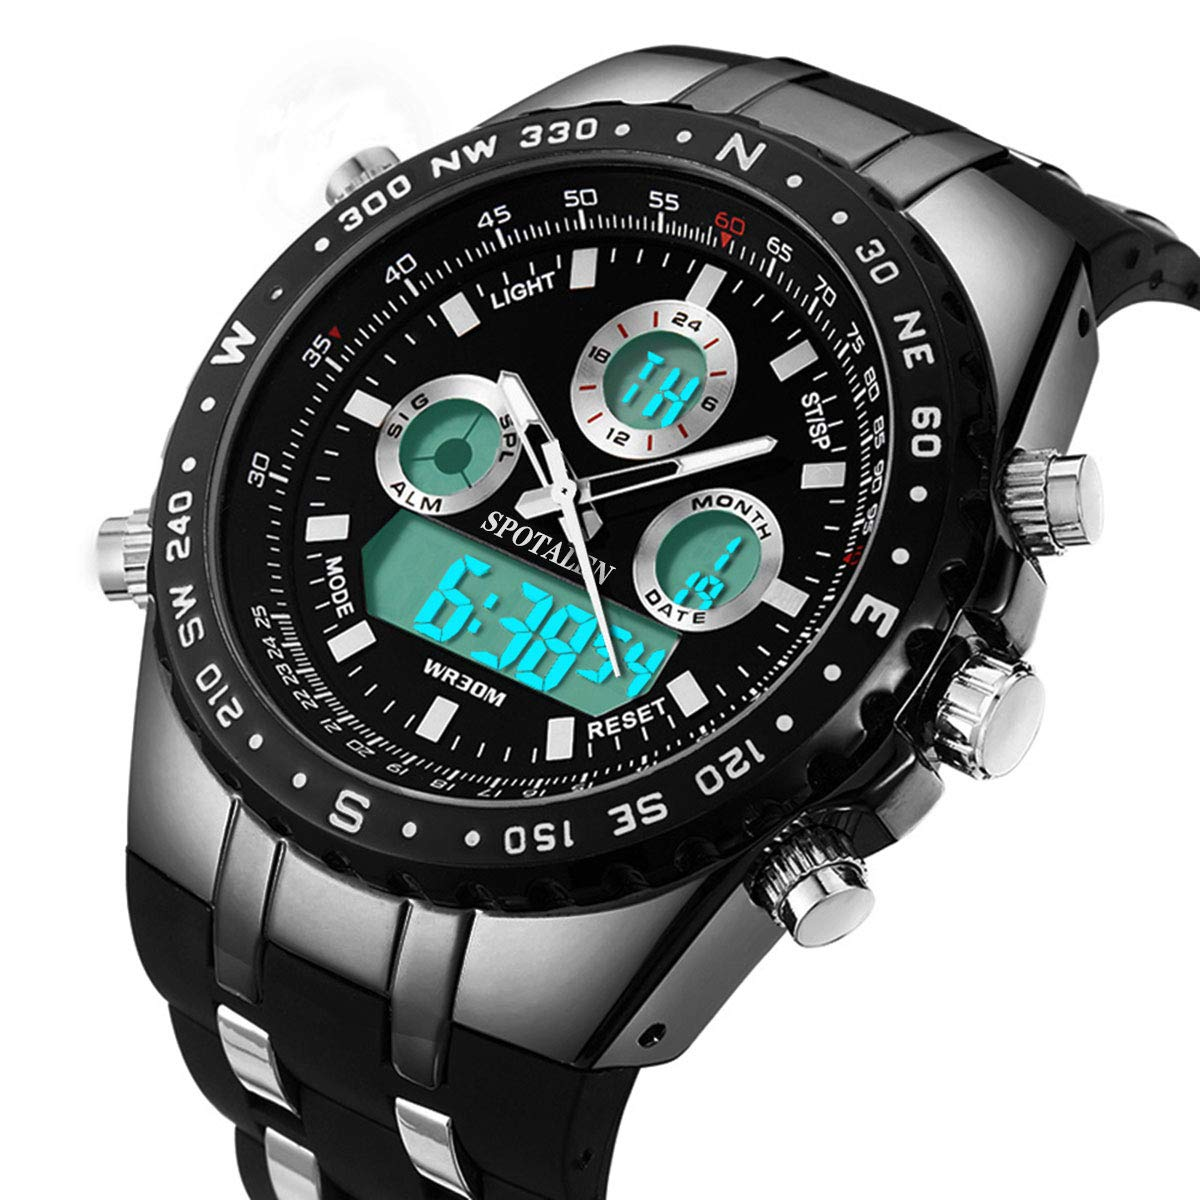 Big Face Sports Watch for Men, Waterproof Military Wrist Digital Watches in Silicone Band